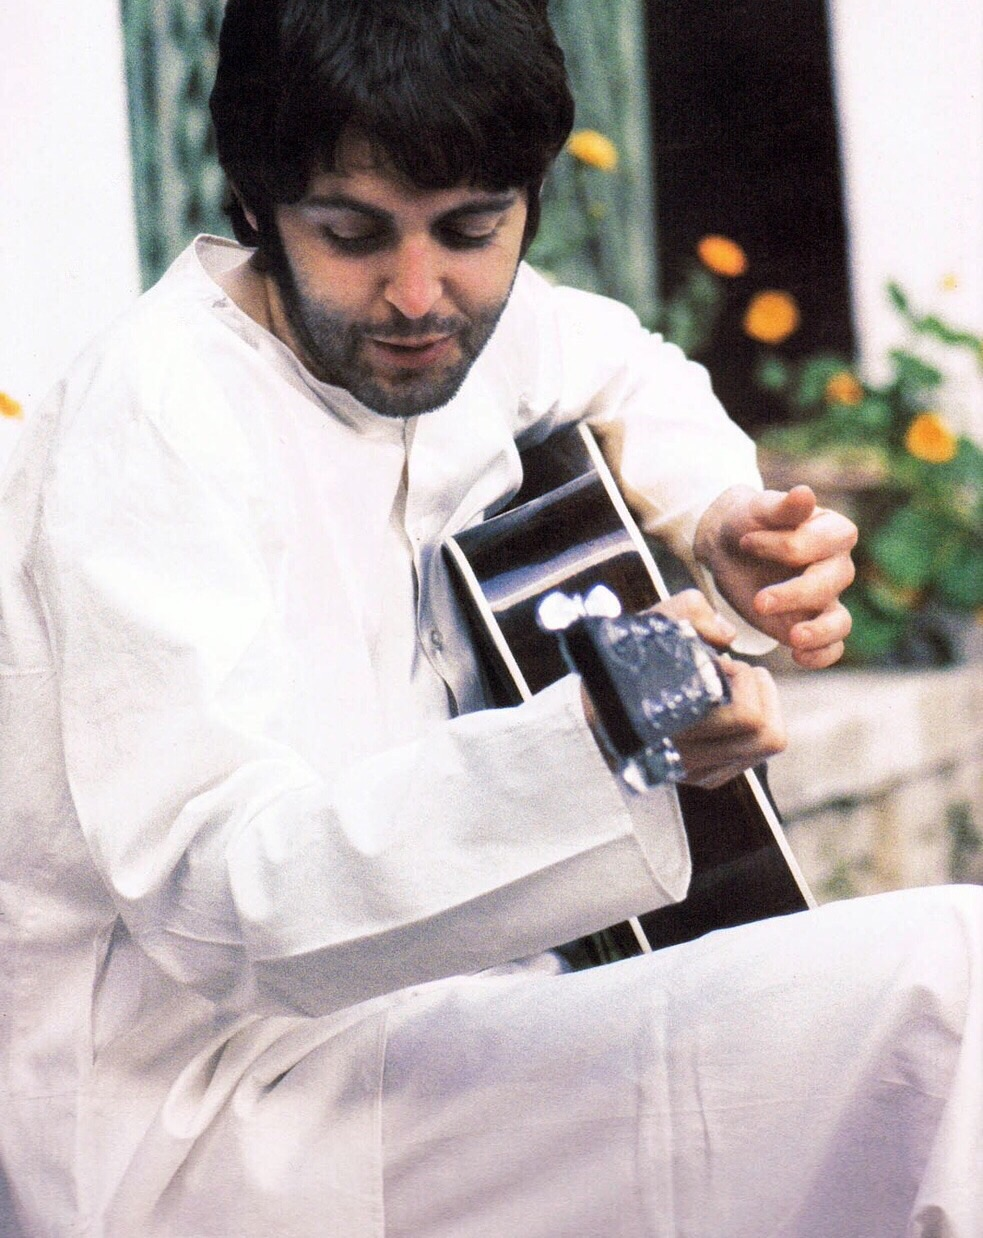 Paul McCartney in India 1968.